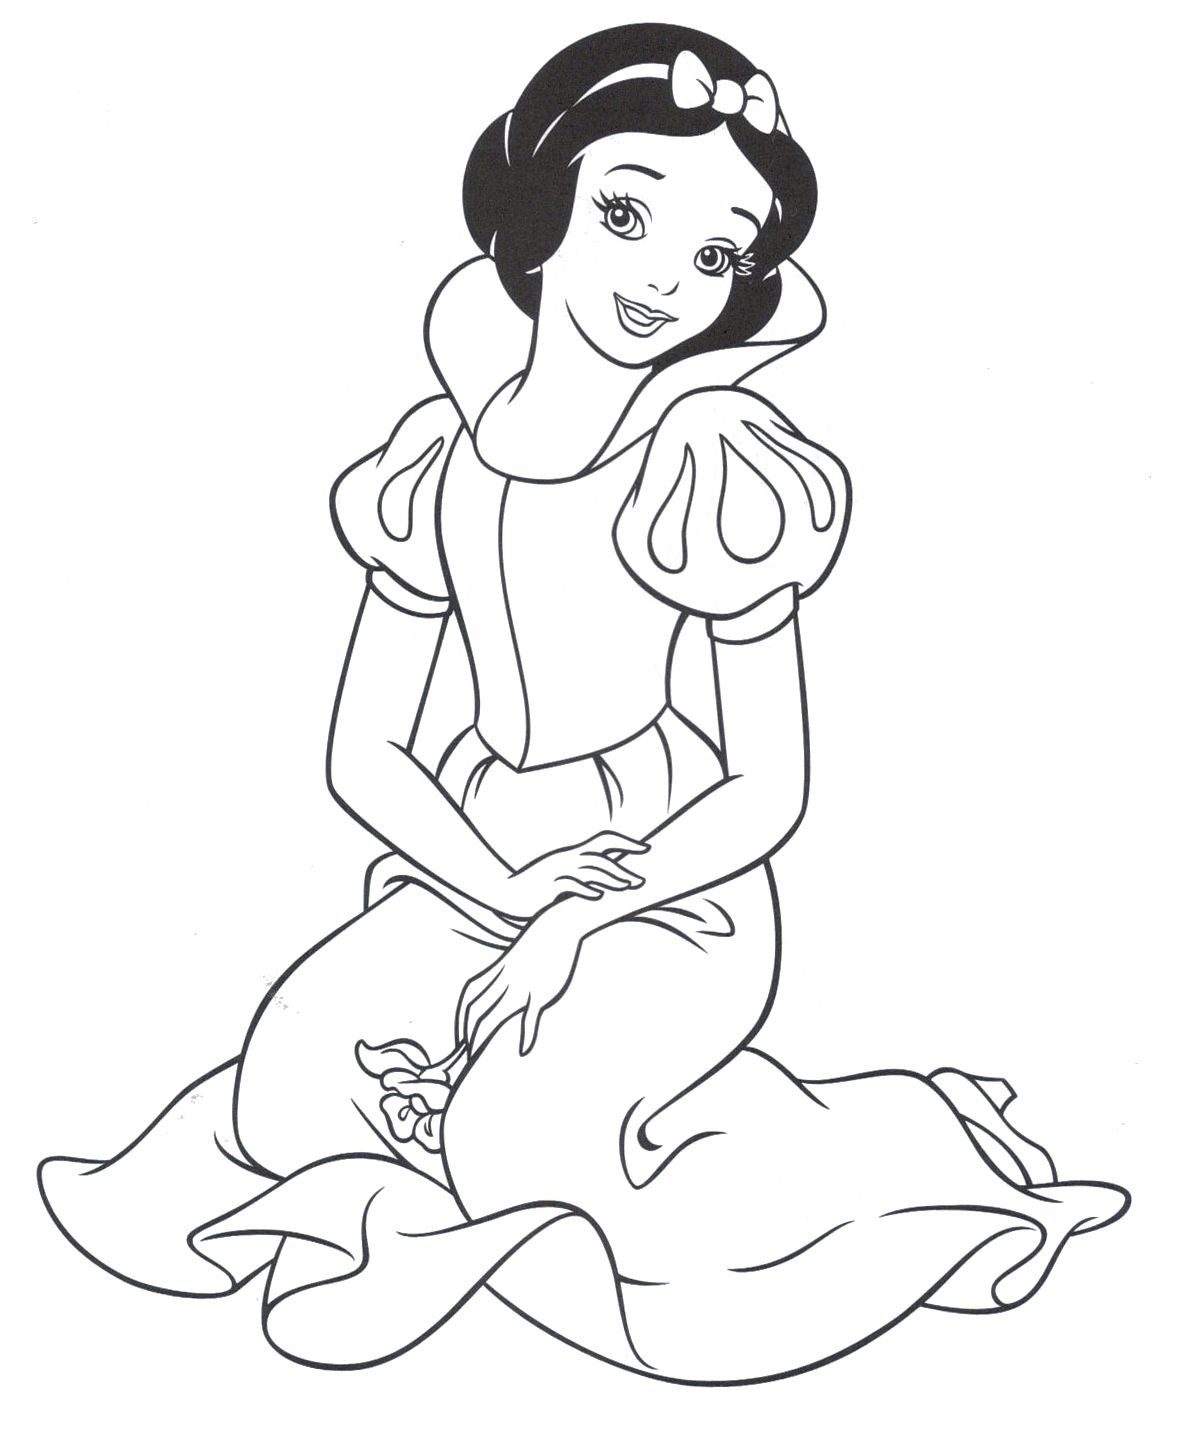 Princess Snow White Was Sitting Very Cute Coloring Pages Snow White Coloring Pages Princess Coloring Pages Cartoon Coloring Pages